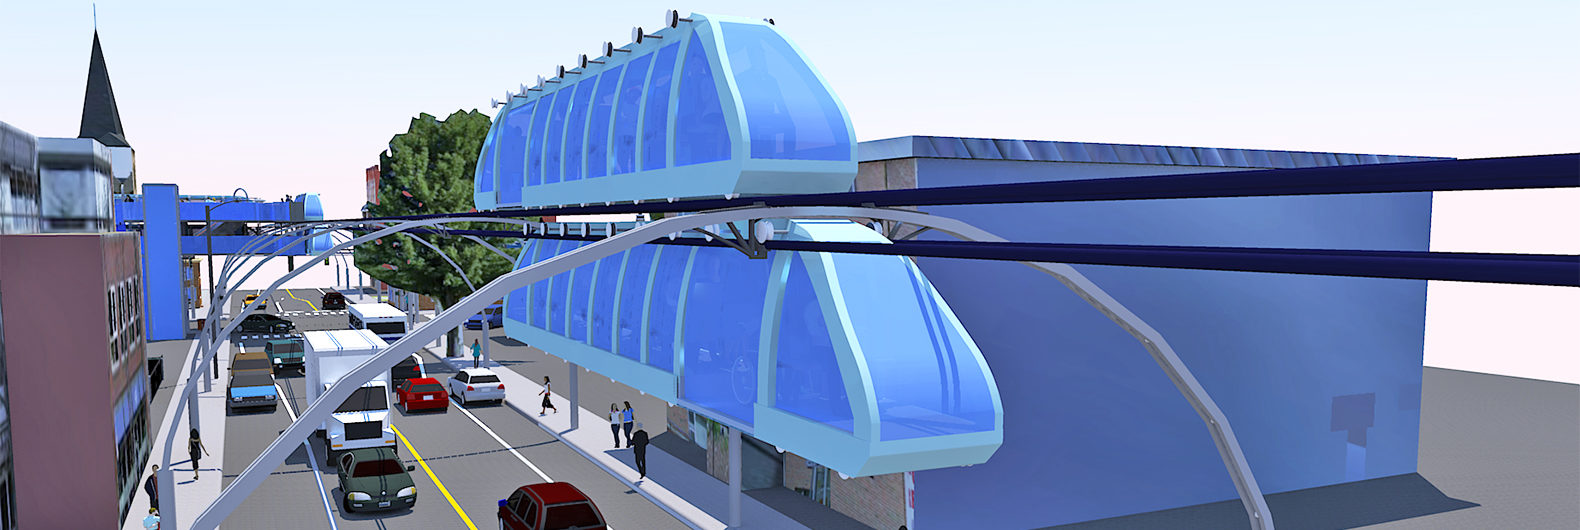 elevated caterpillar trains fly over traffic without blocking out